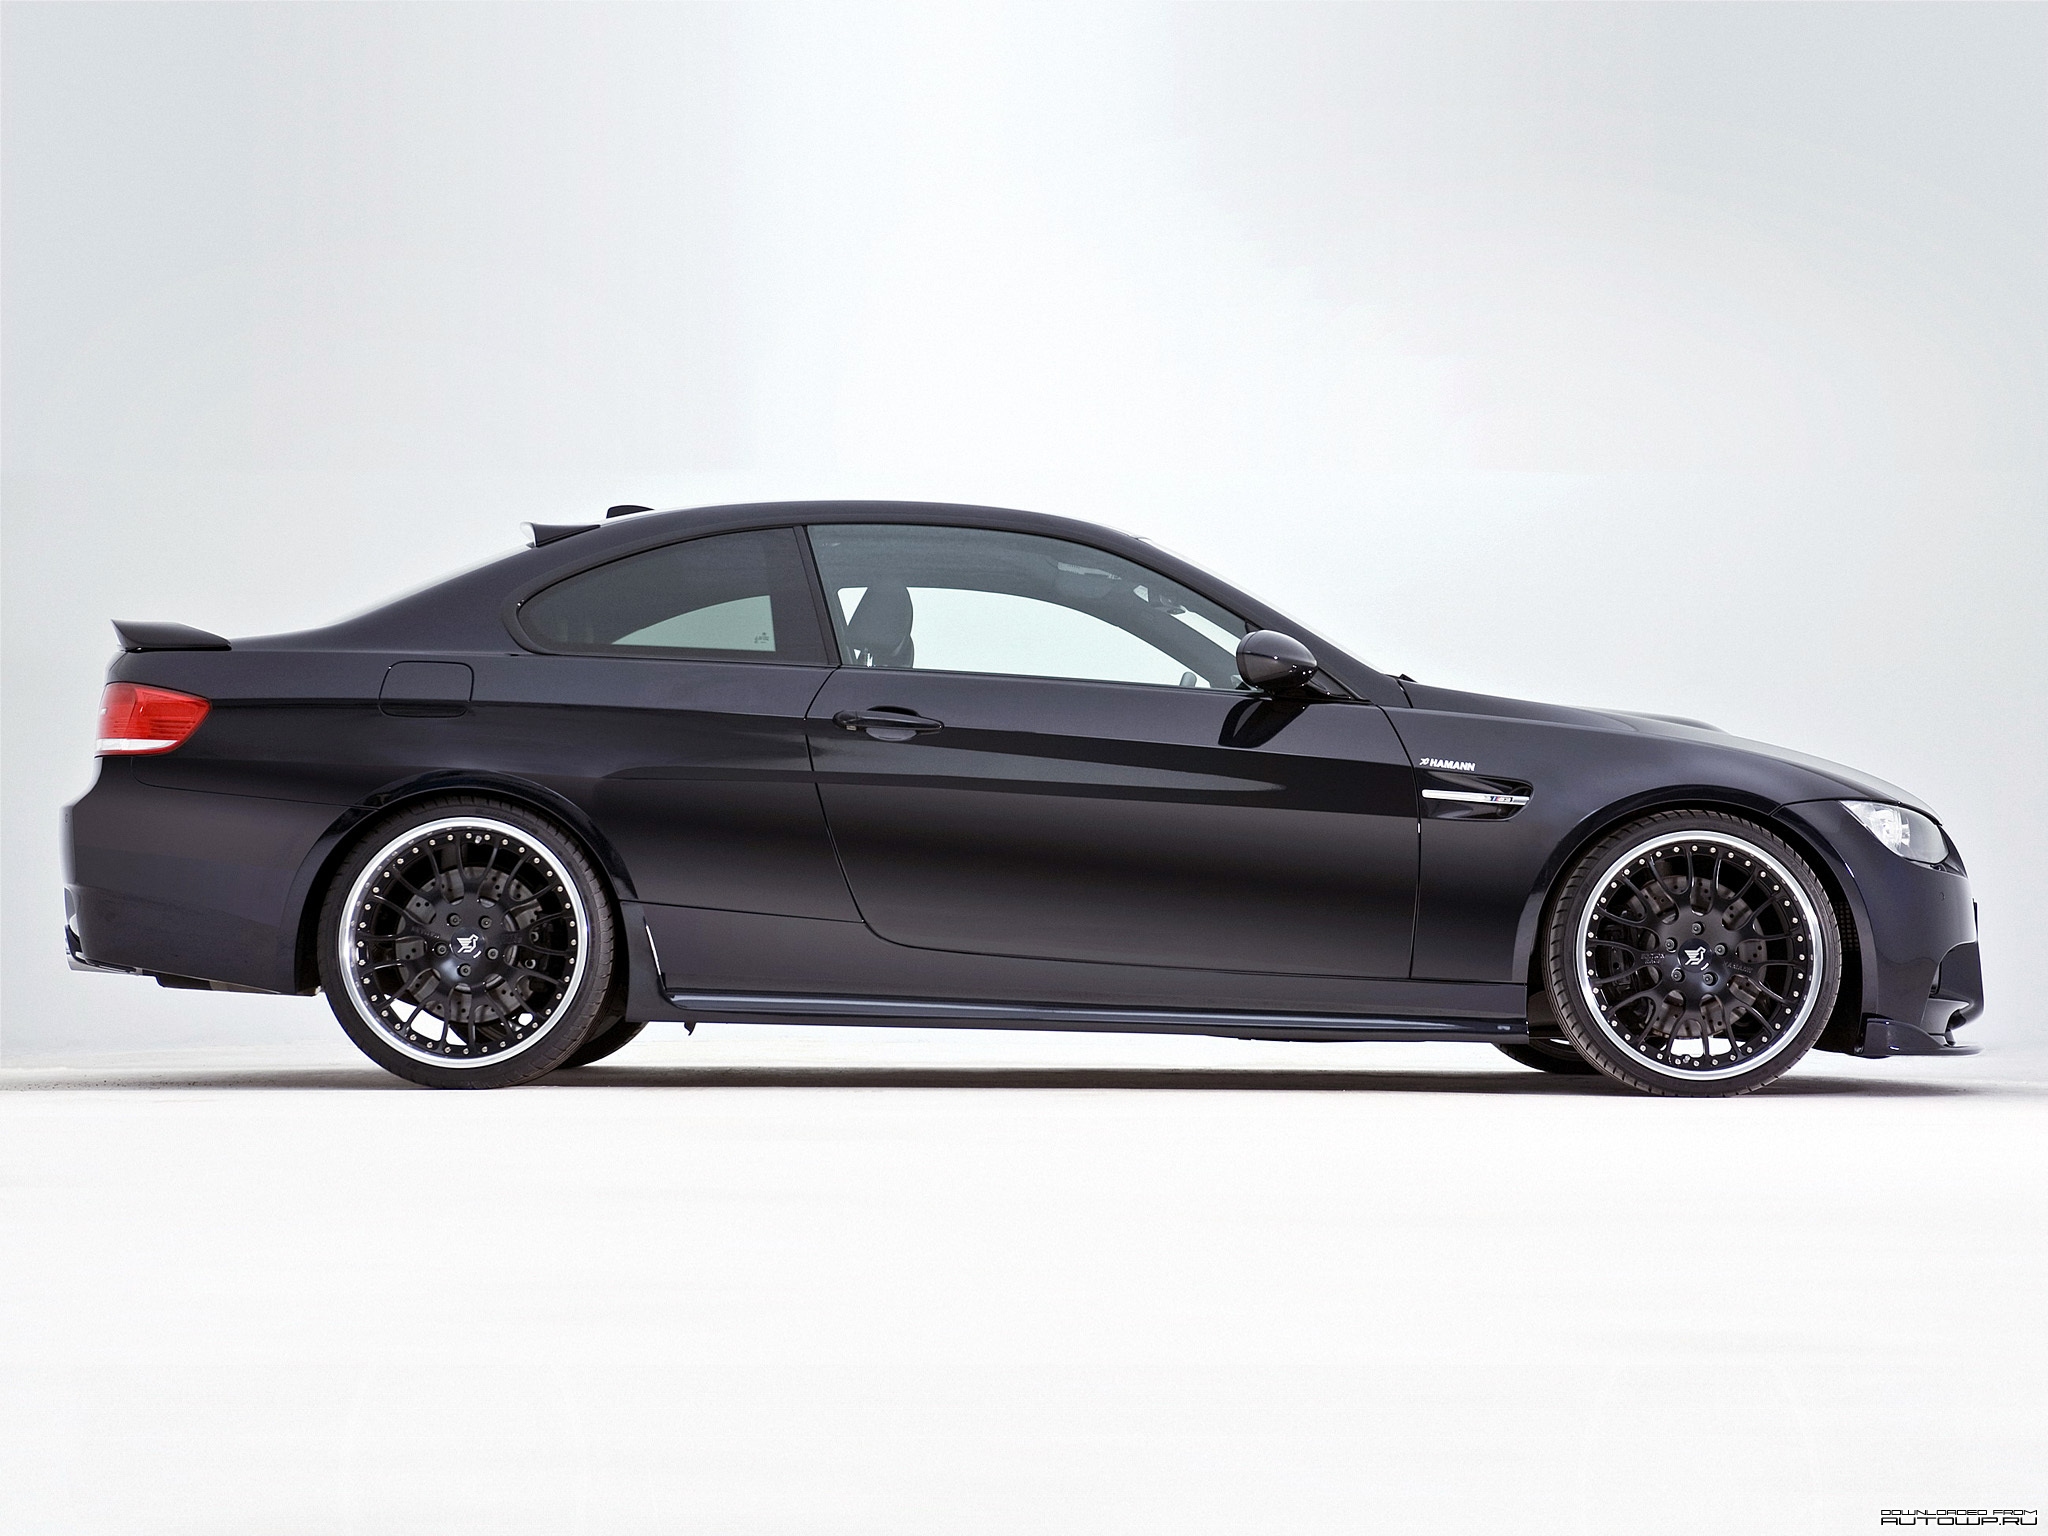 hamann bmw m3 coupe e92 photos photogallery with 12 pics. Black Bedroom Furniture Sets. Home Design Ideas